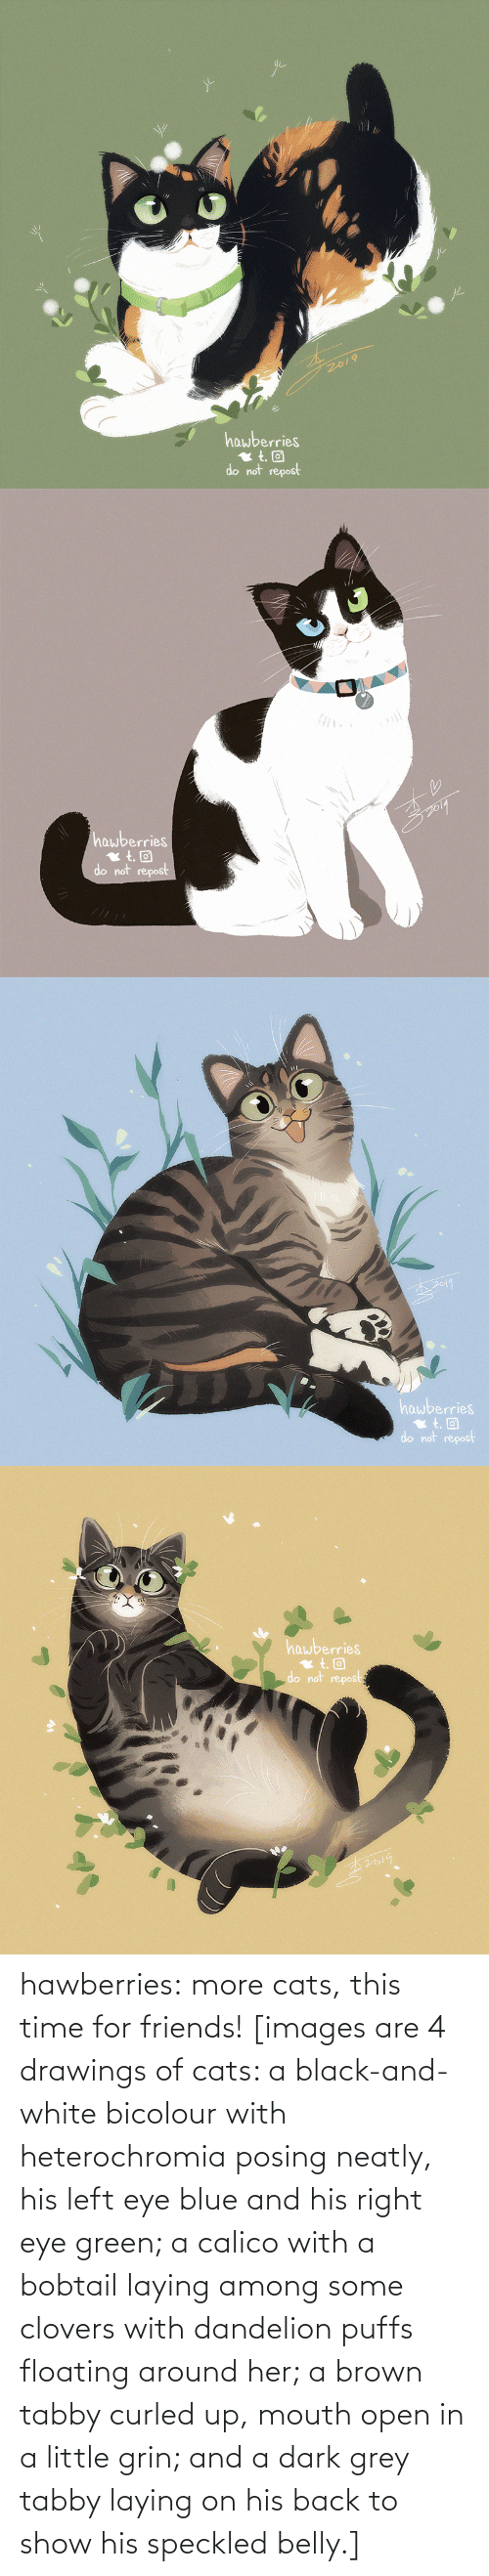 Drawings: 2019  hawberries  do not repost   hawberries  do not repost   hawberries  do not repost   hawberries  do not repost hawberries: more cats, this time for friends! [images are 4 drawings of cats: a black-and-white bicolour with heterochromia posing neatly, his left eye blue and his right eye green; a calico with a bobtail laying among some clovers with dandelion puffs floating around her; a brown tabby curled up, mouth open in a little grin; and a dark grey tabby laying on his back to show his speckled belly.]